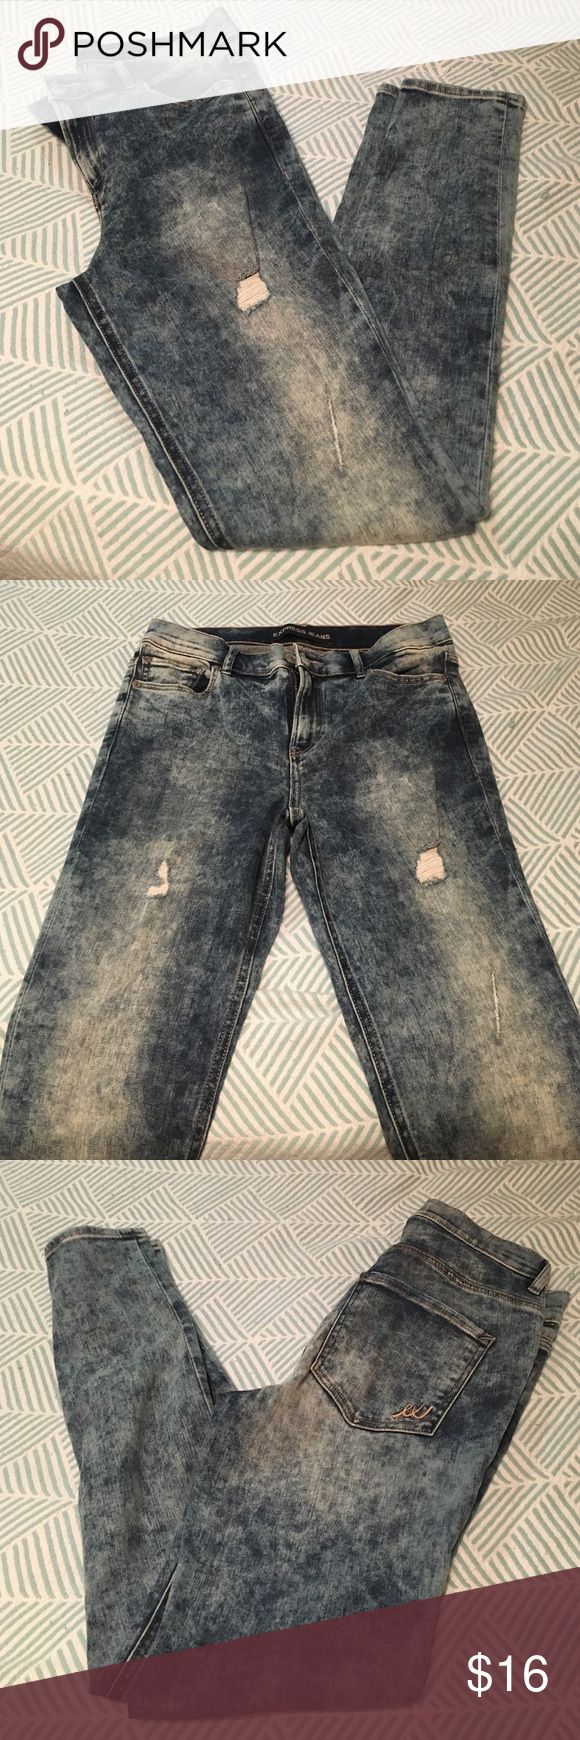 Express acid wash jeans Take me back to the 80's with these! Acid wash jeans from express, never been worn! Express Jeans Skinny